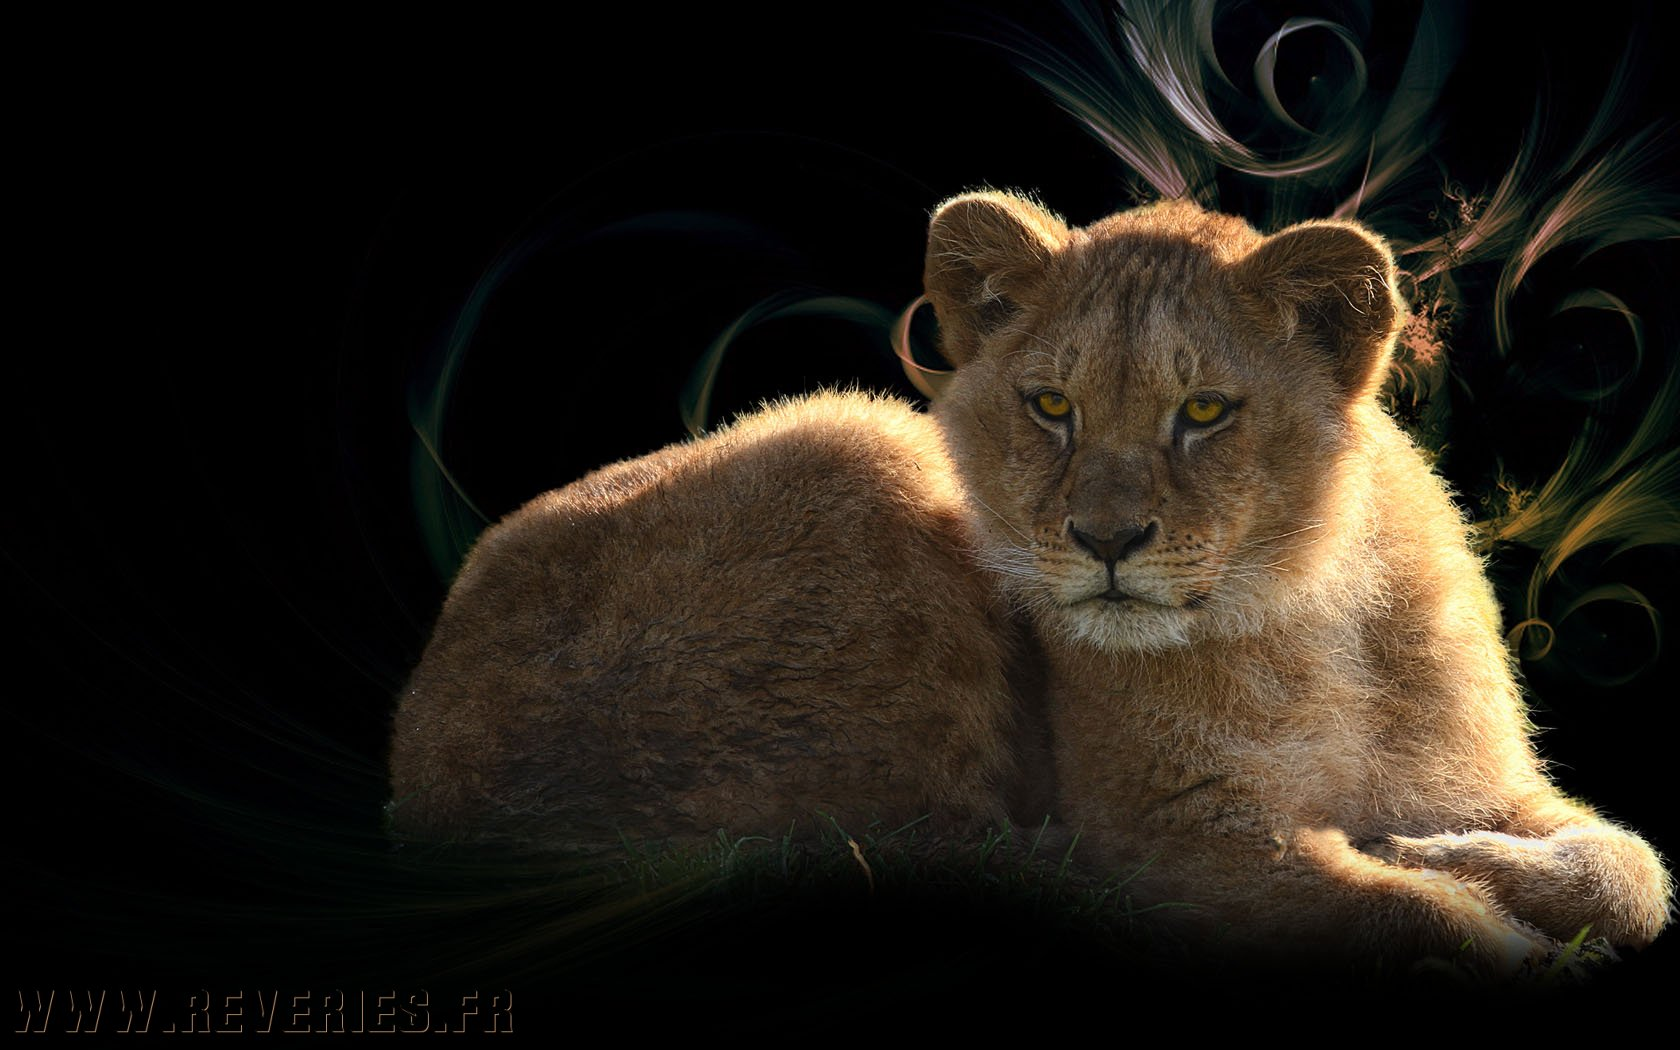 Animaux wallpapers - Wallpaper animaux ...